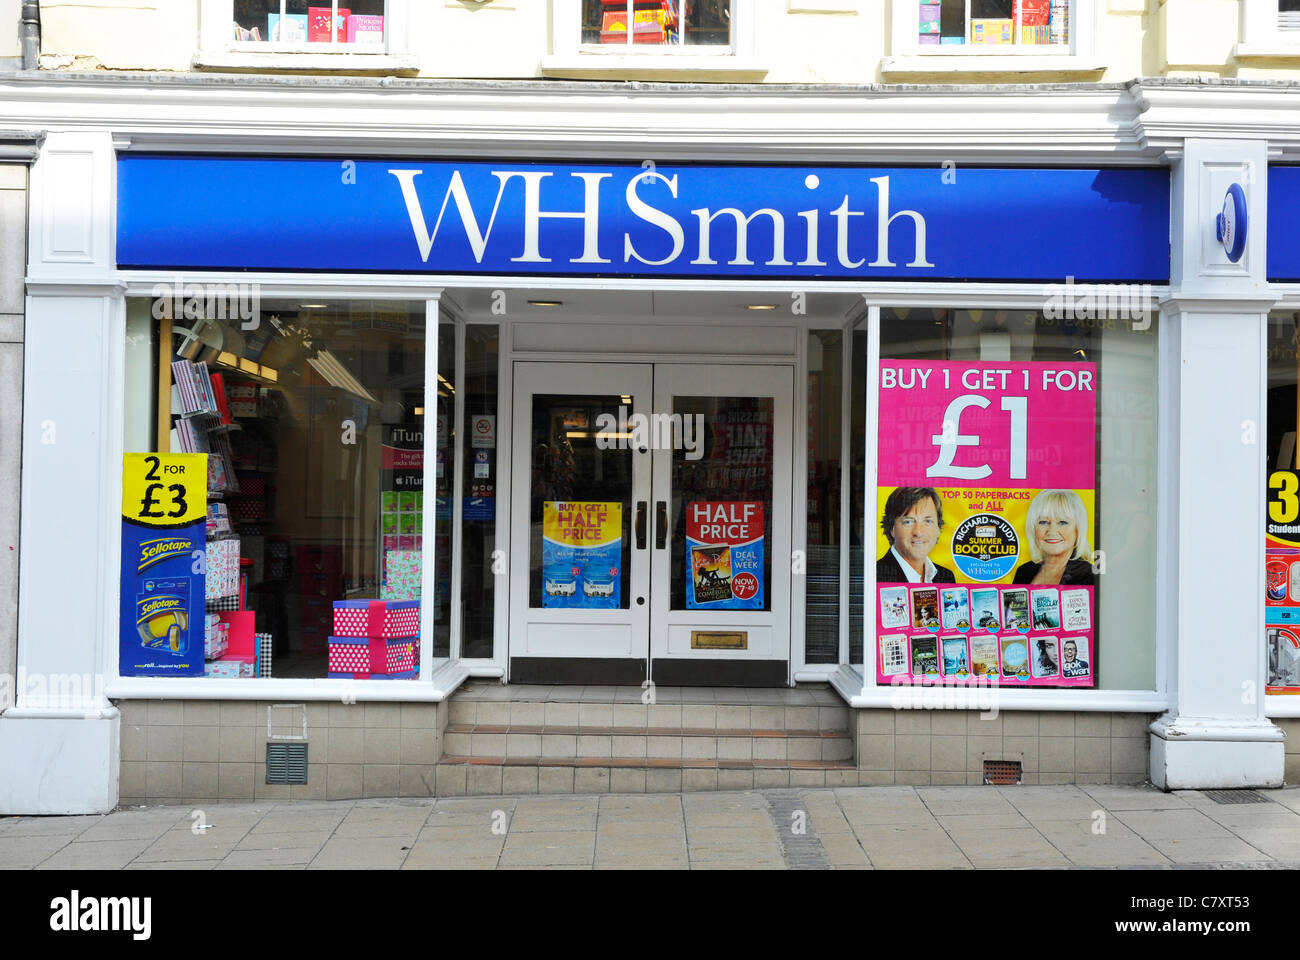 WH Smith shop in Norwich, England - Stock Image